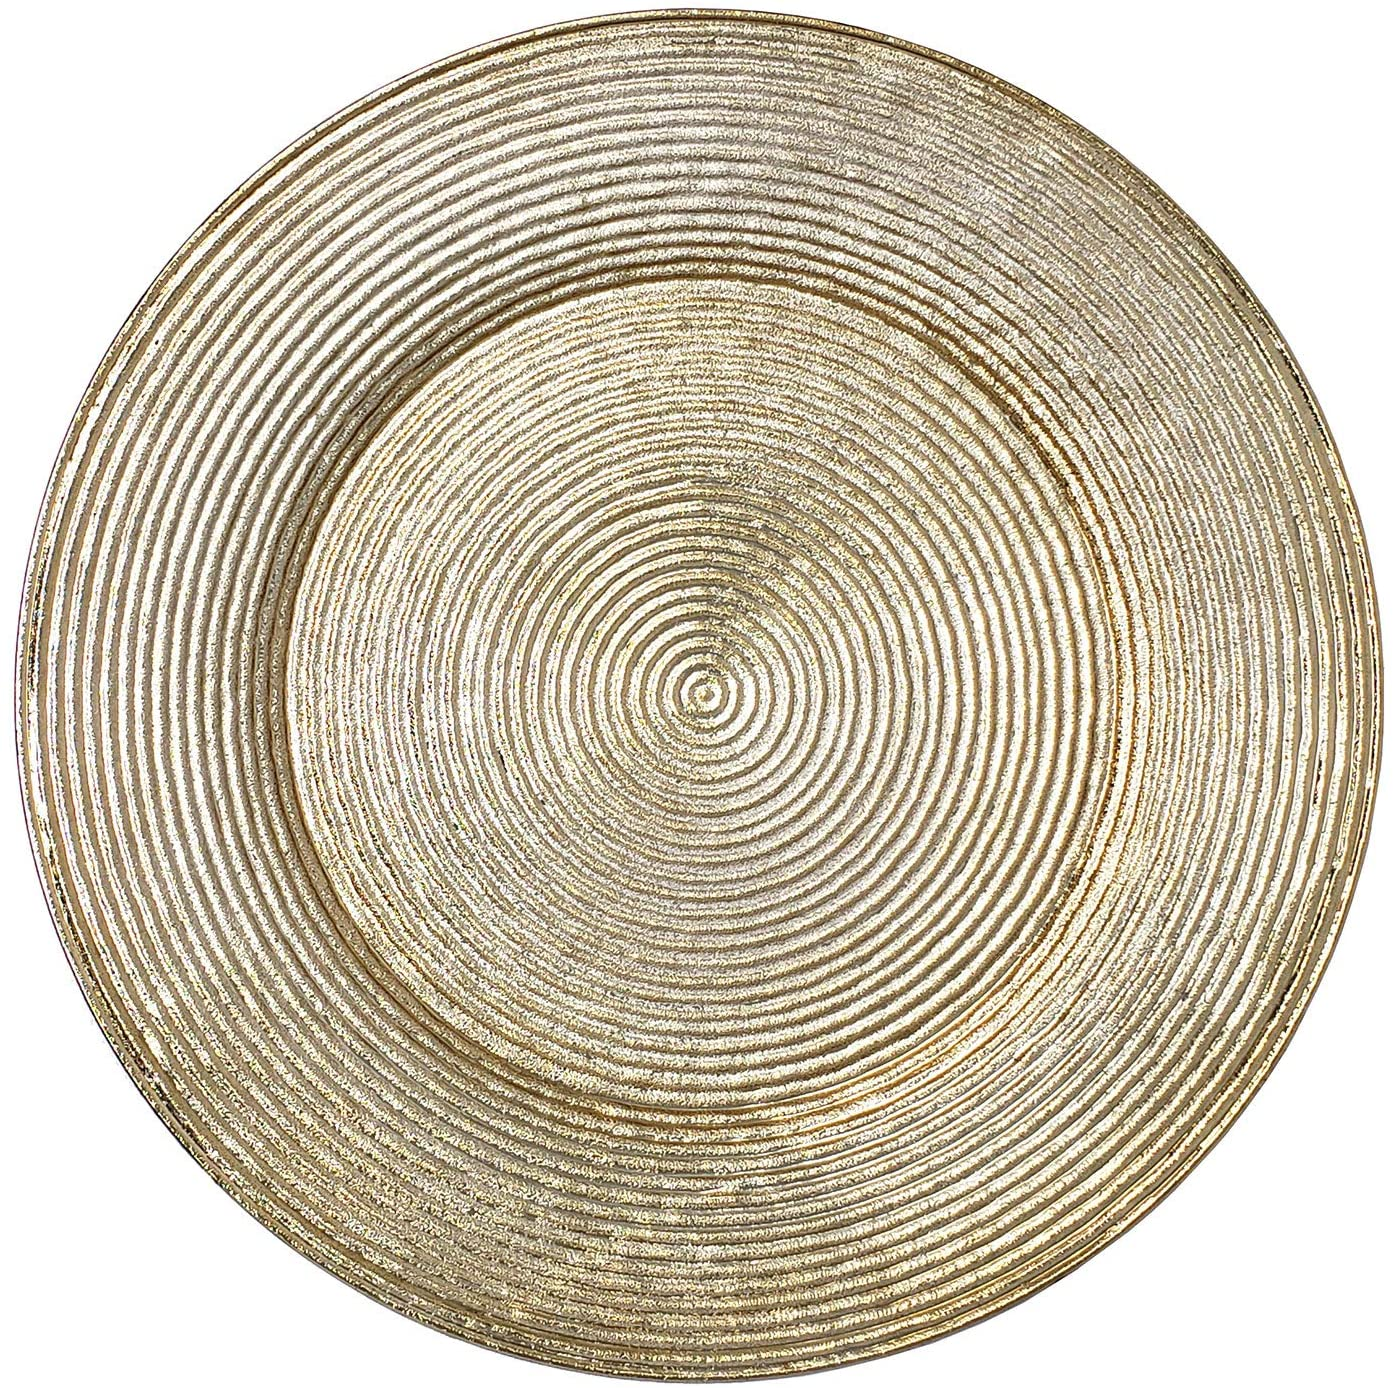 Lovely Christmas Dinnerware Formal 13-Inch Spiral Round Charger Plate Wedding Receptions Anniversary Dinners Modern Appeal Plates (6, Gold Spiral)